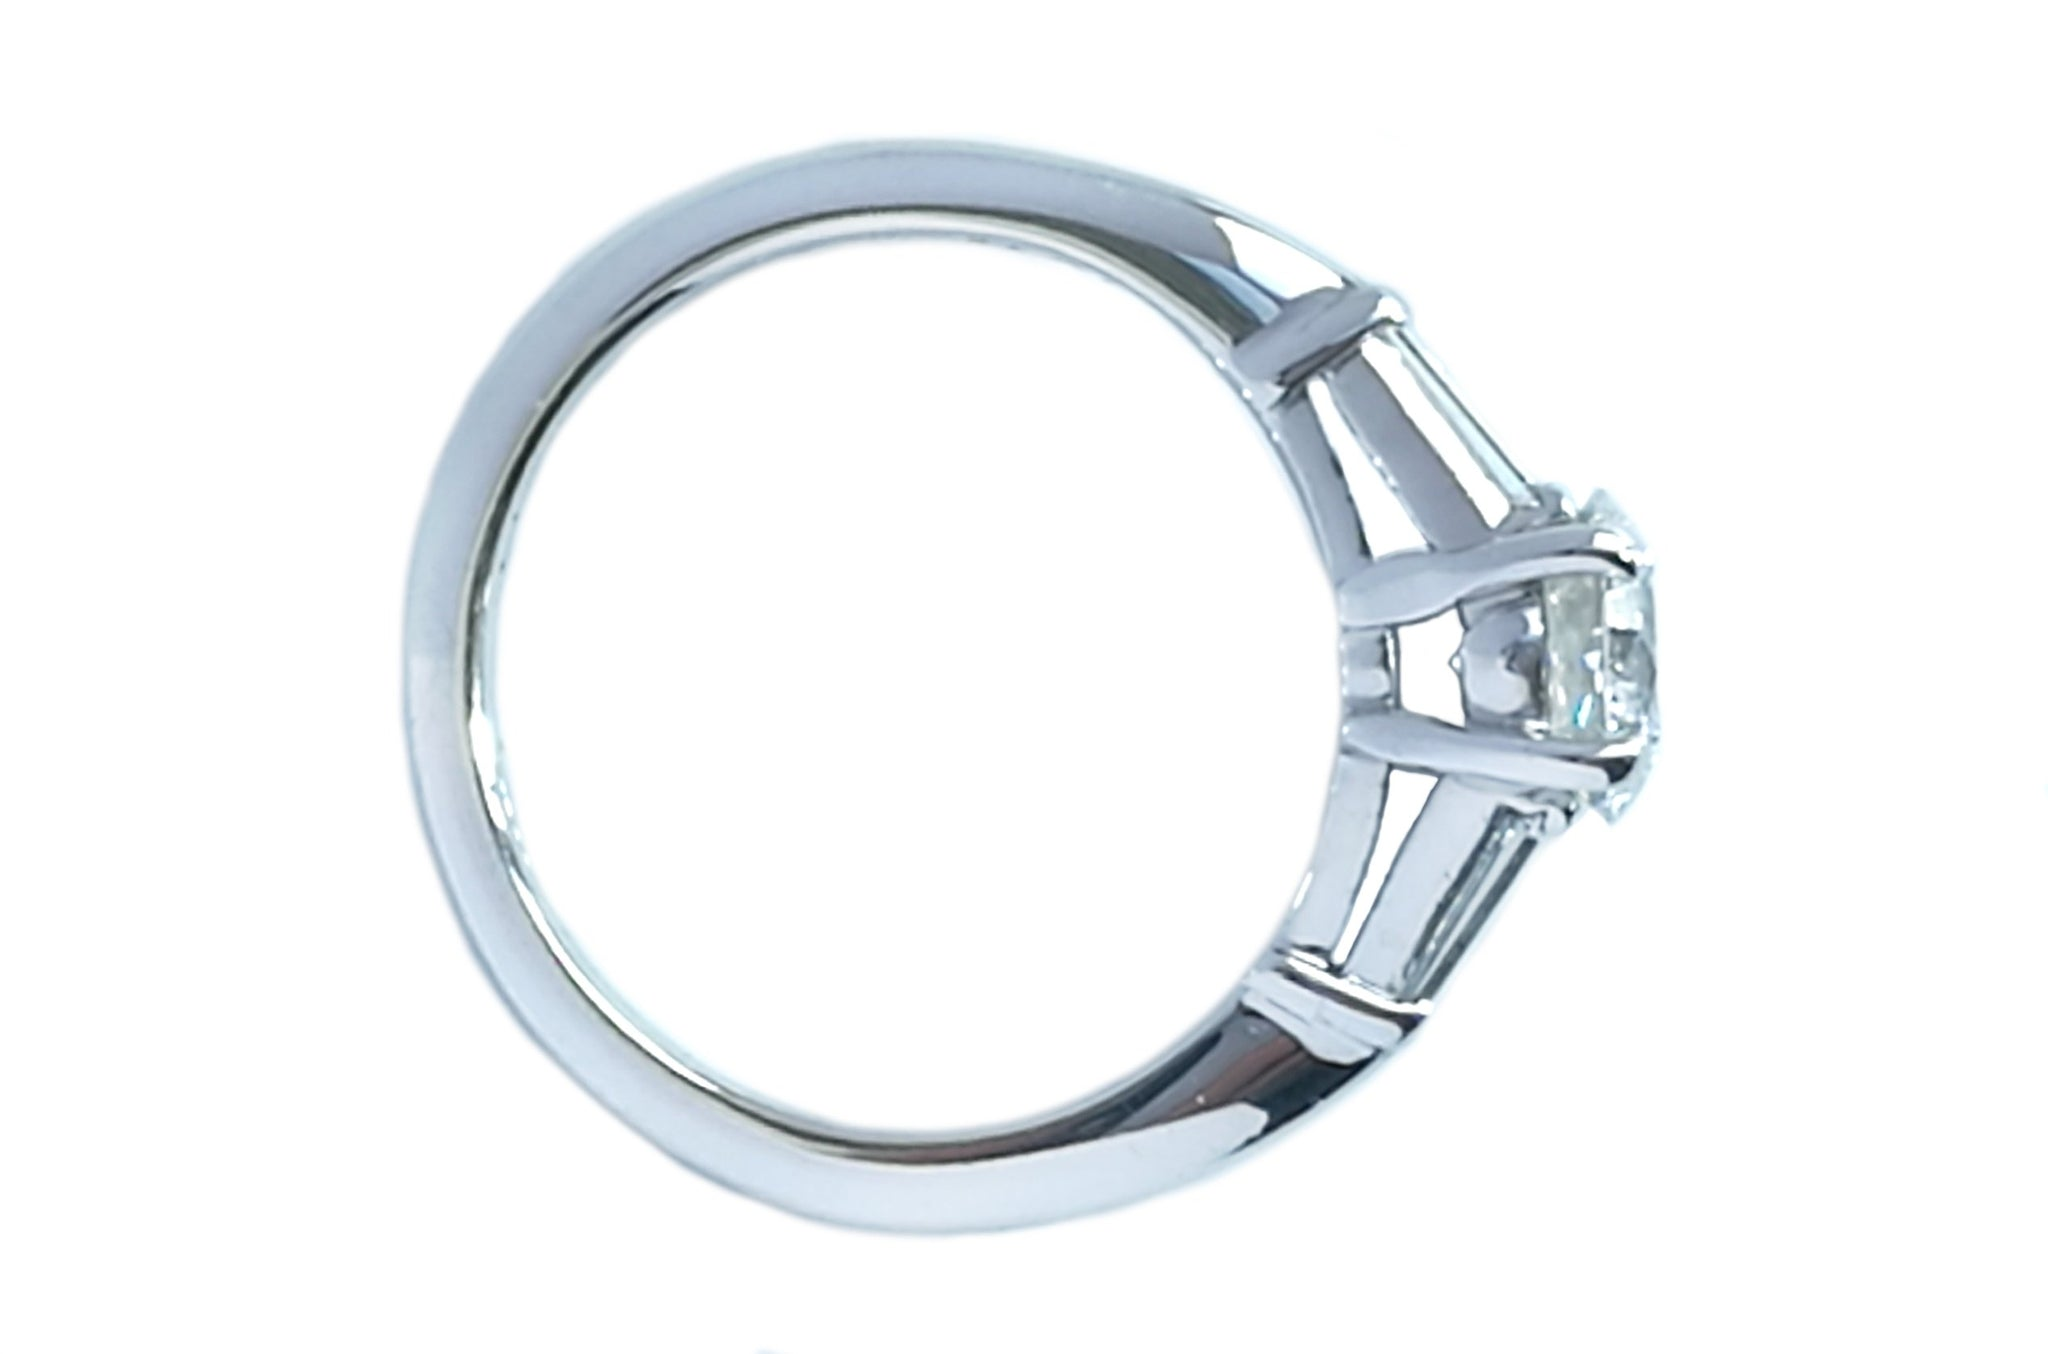 Tiffany & Co. 1.17ct G/VS1 3 Stone Diamond Engagement Ring with Baguette Side Stones, view from above